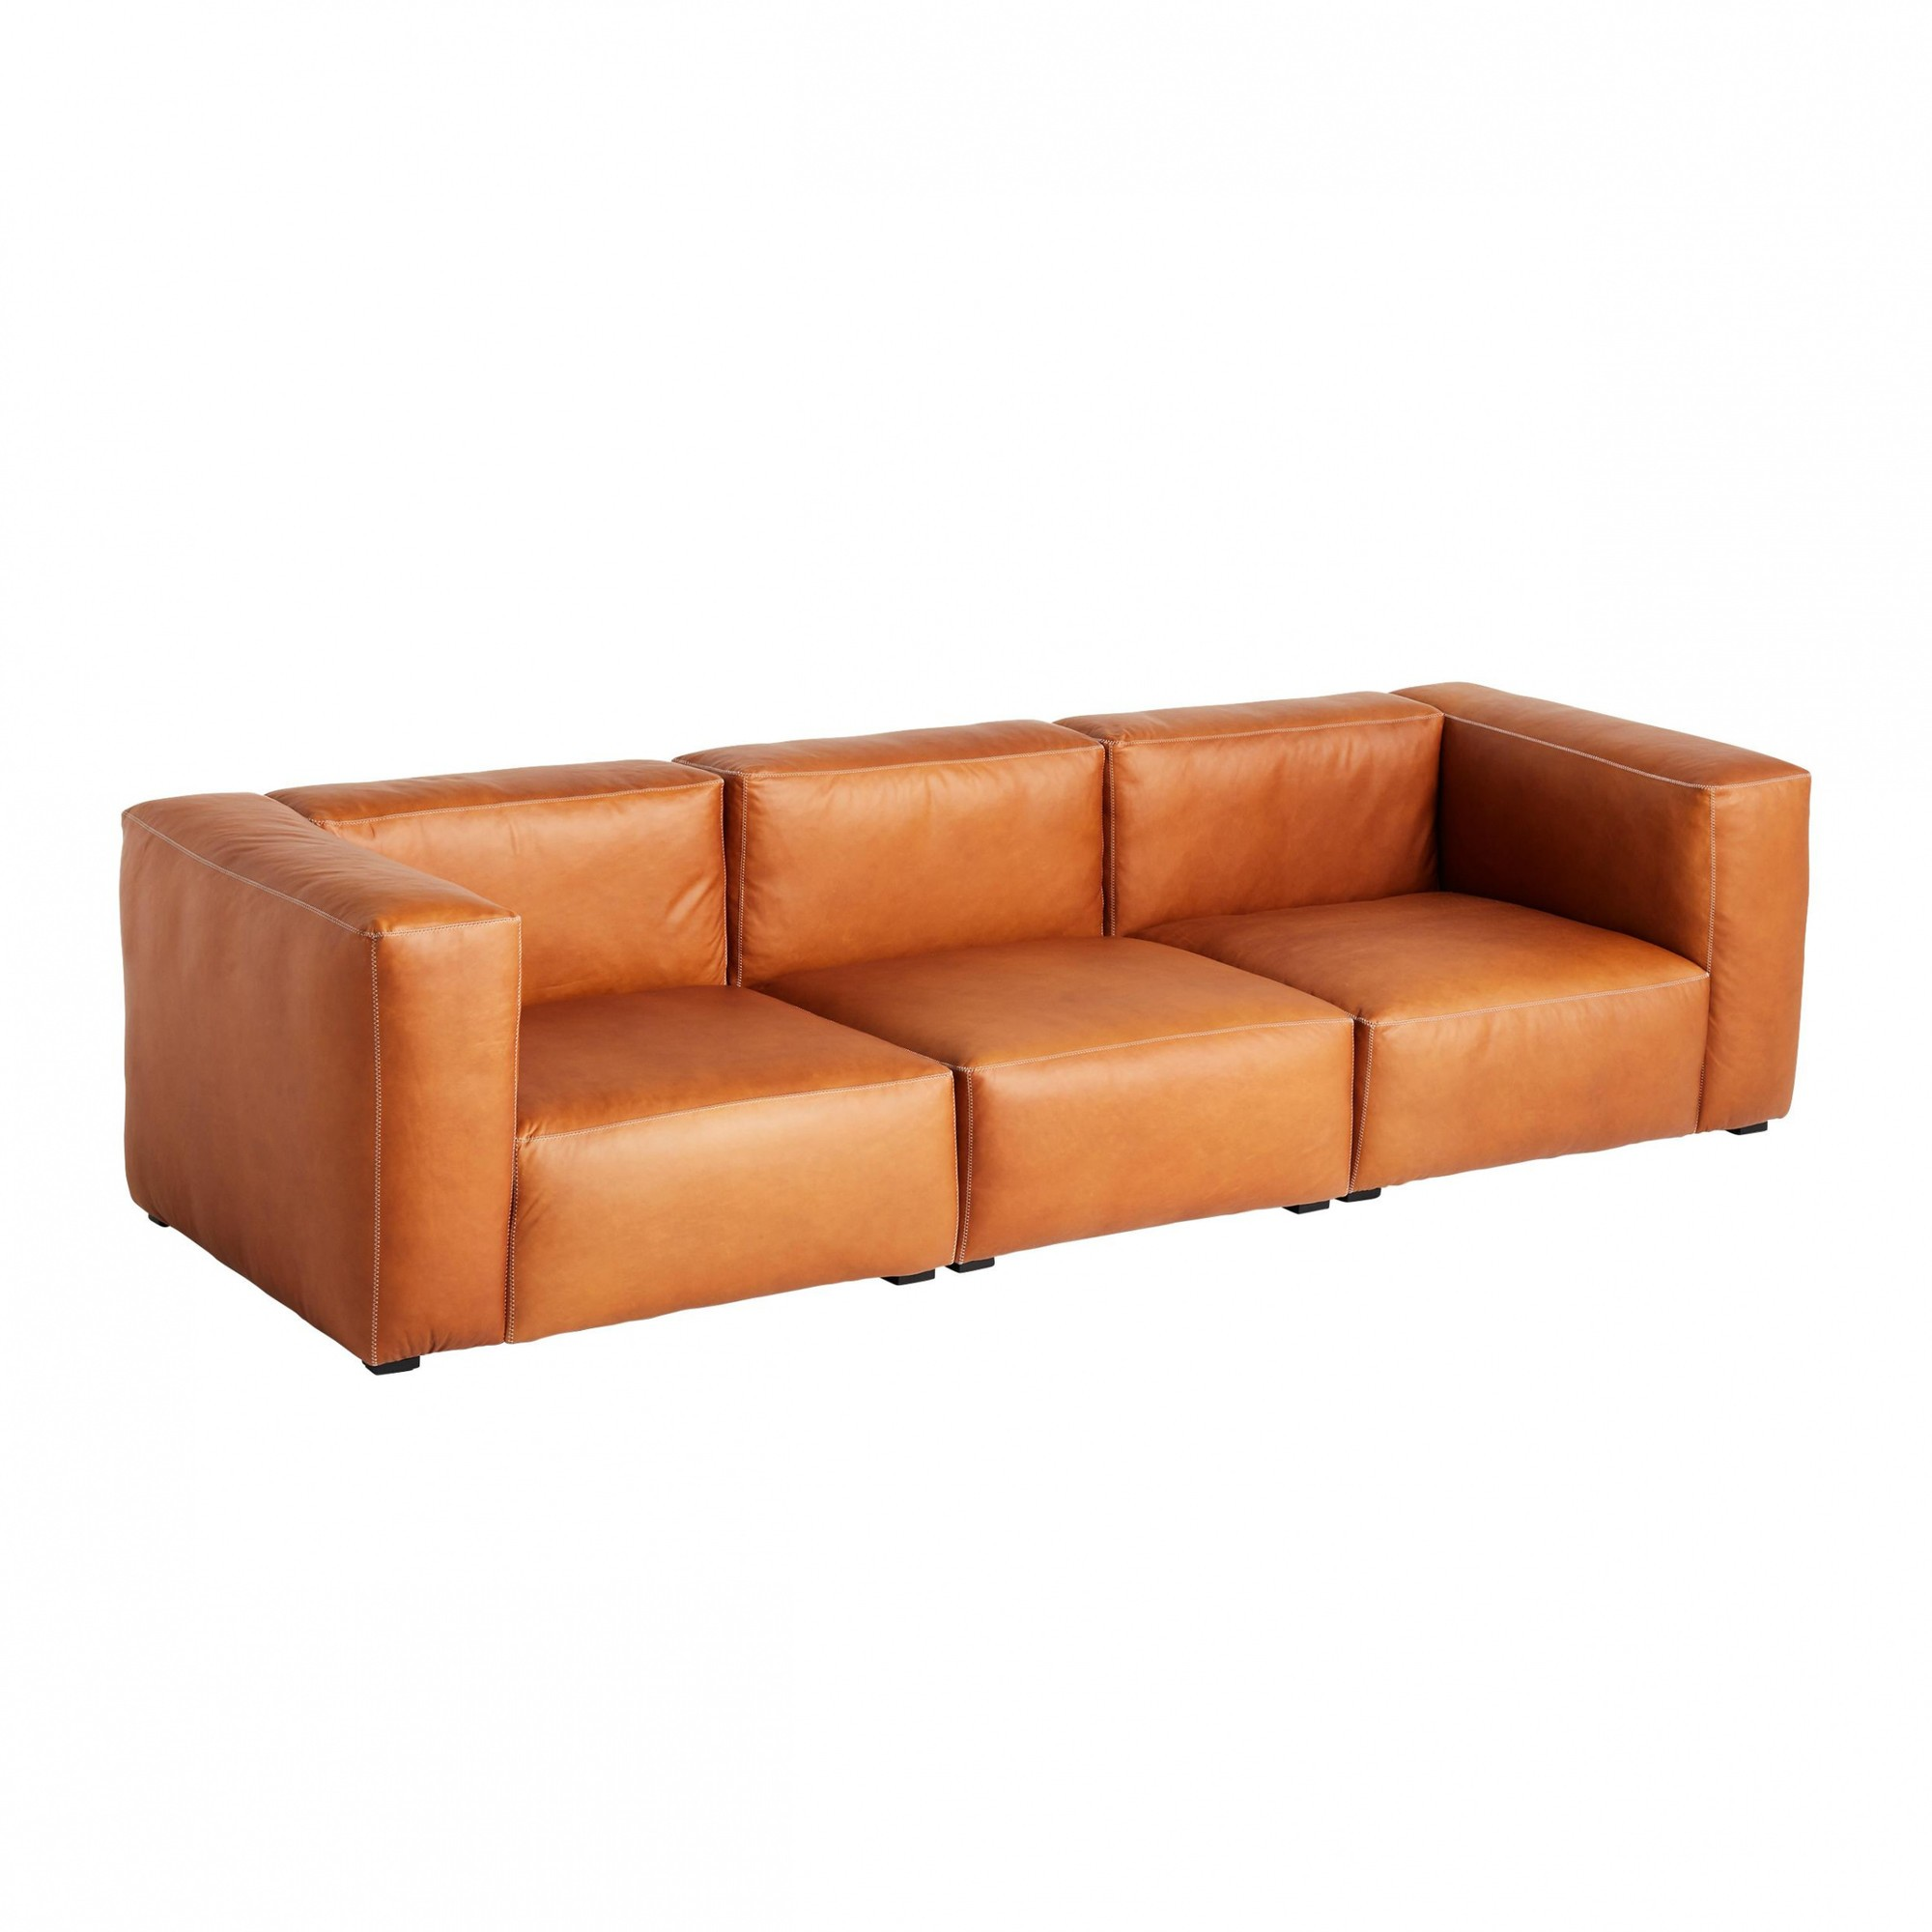 HAY Mags Soft 3 Seater Sofa Leather | AmbienteDirect